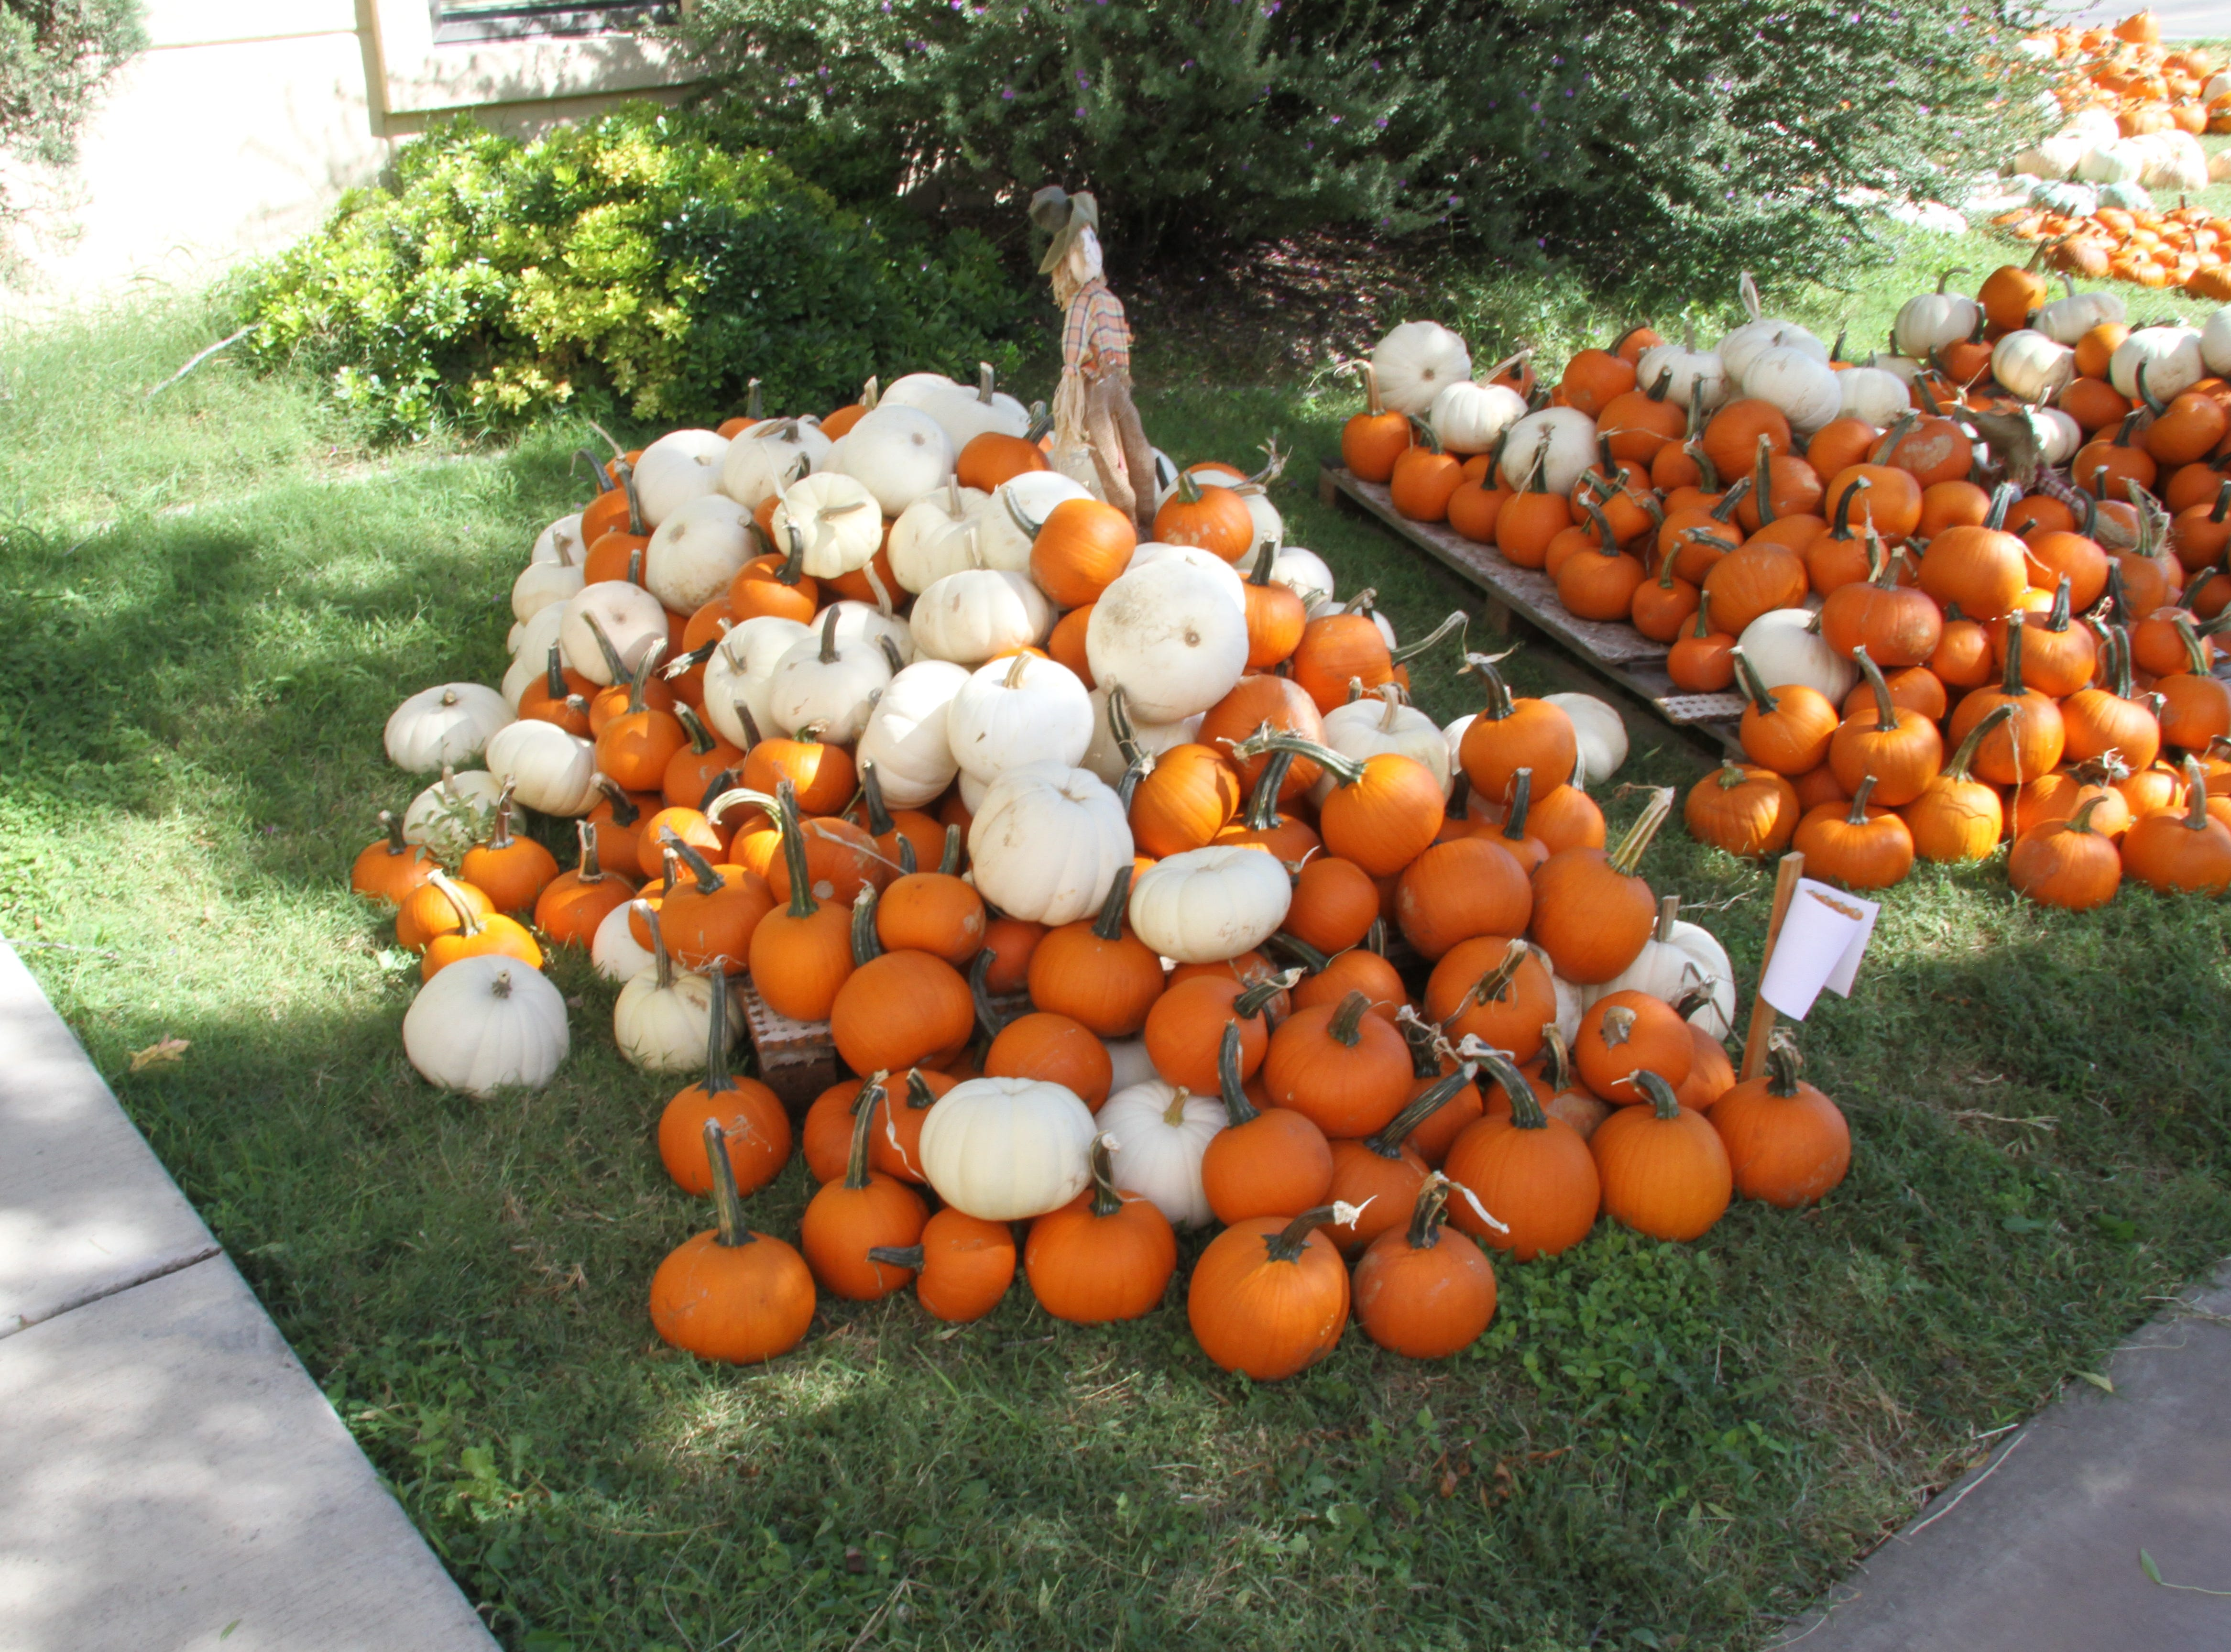 St. Peter's Lutheran Church Pumpkin Patch is back. Each year, two local non-profit organizations share the proceeds. This year's recipients include:Packs for Hunger and the Children's Advocacy Center-Buddies Program. The pumpkin patch is open daily through Oct. 31.